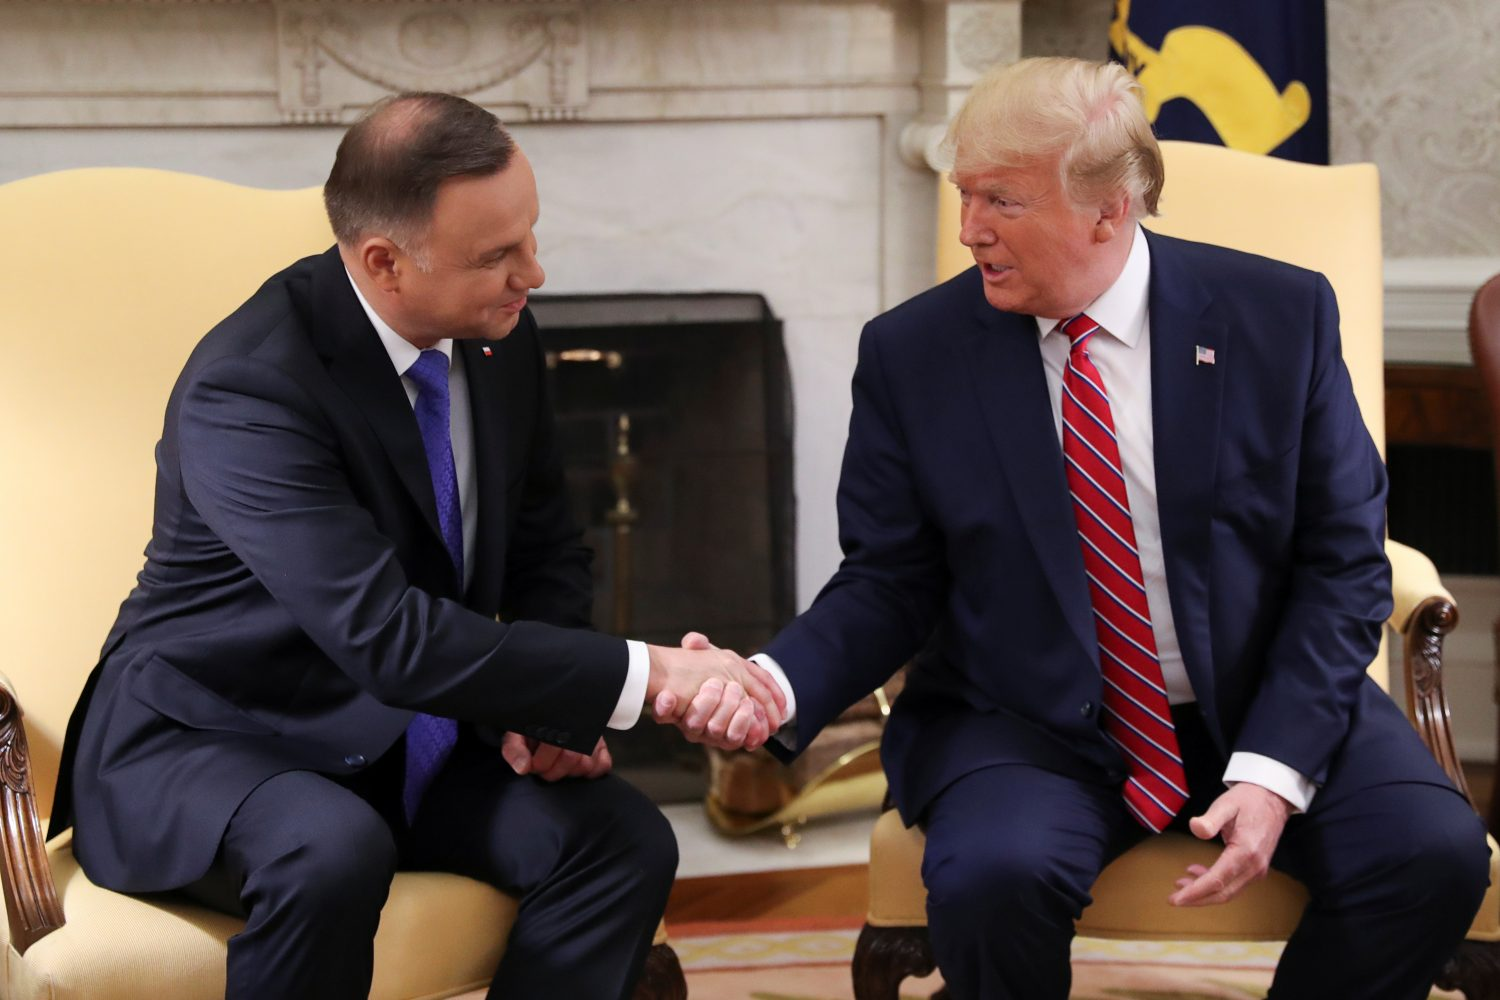 U.S. President Donald Trump greets Poland's President Andrzej Duda in the Oval Office of the White House in Washington, U.S., June 12, 2019. REUTERS/Leah Millis